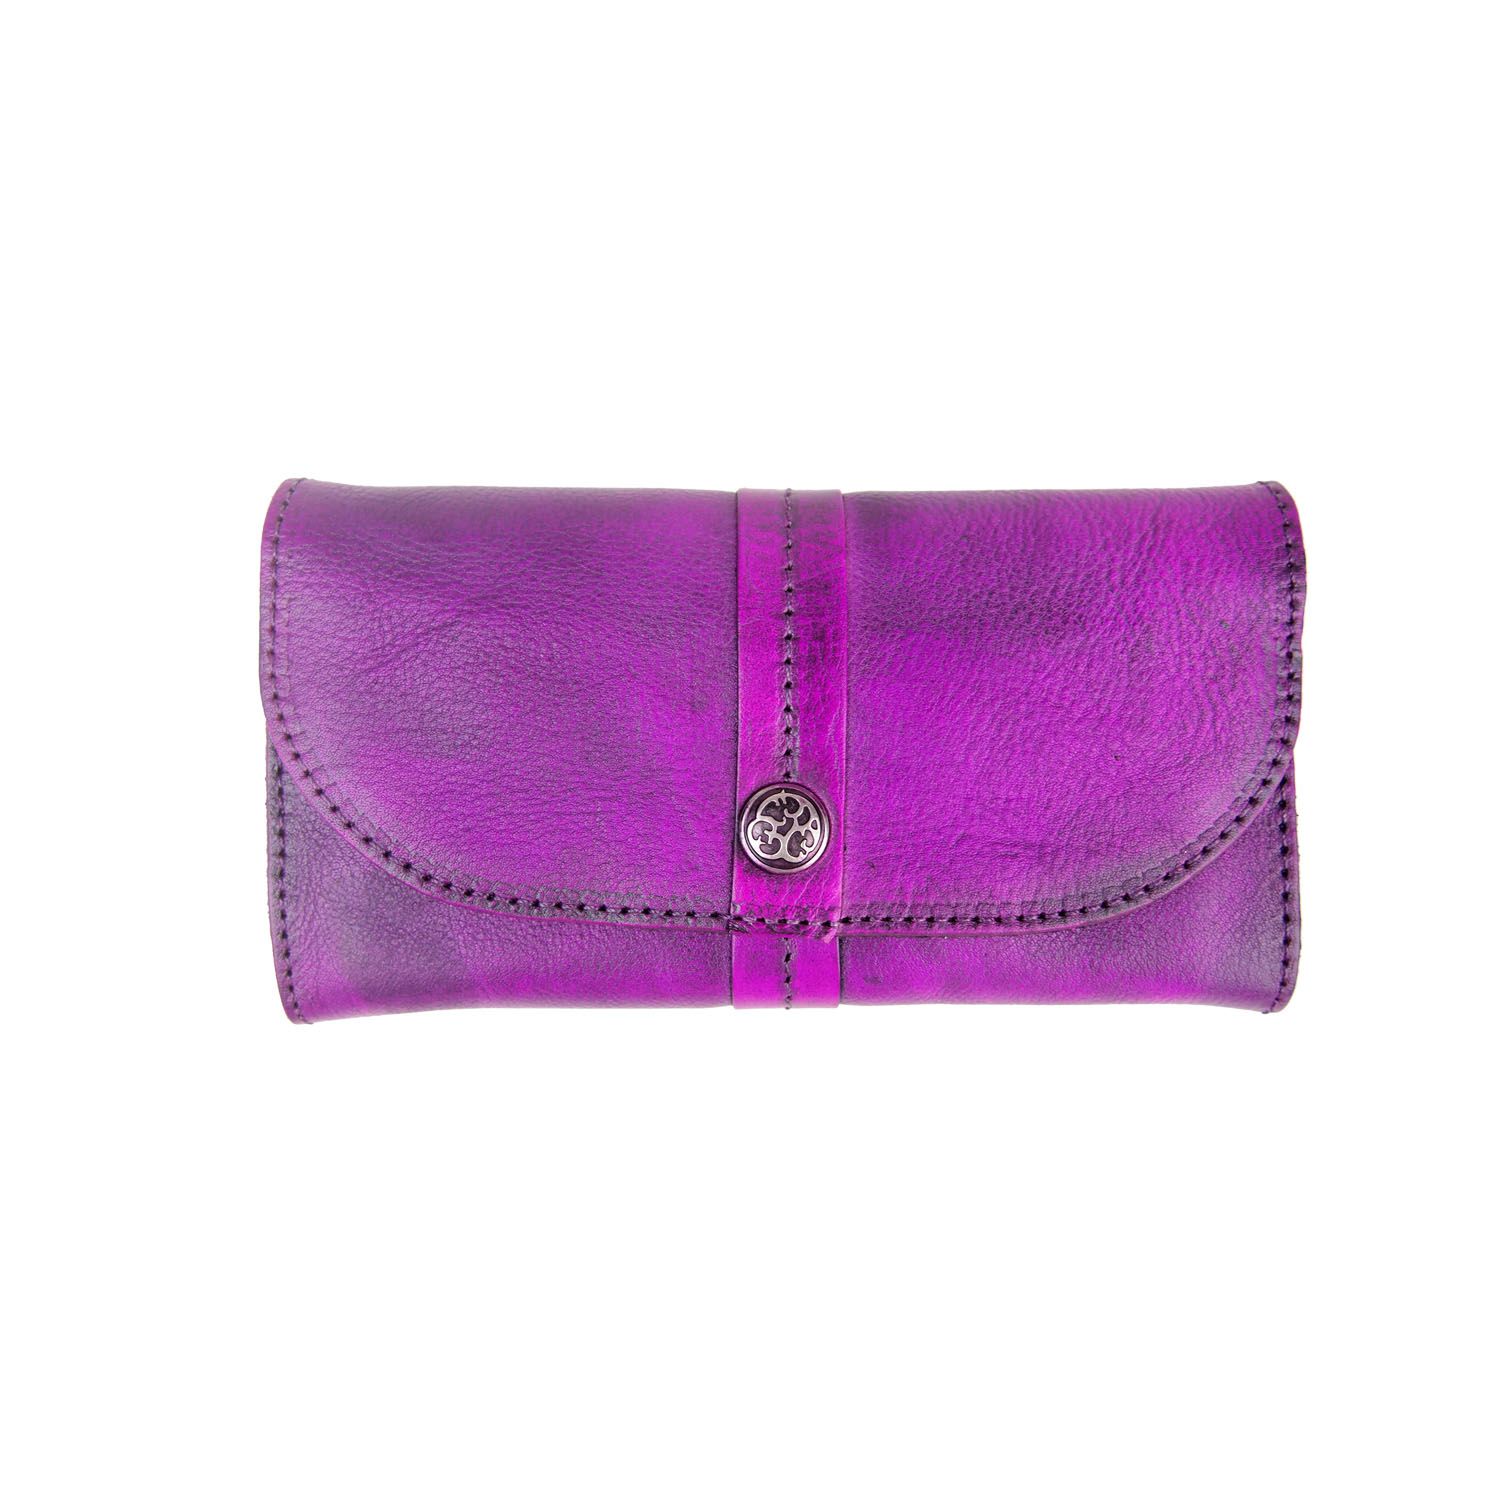 Butterfield Lara Wallet Front View